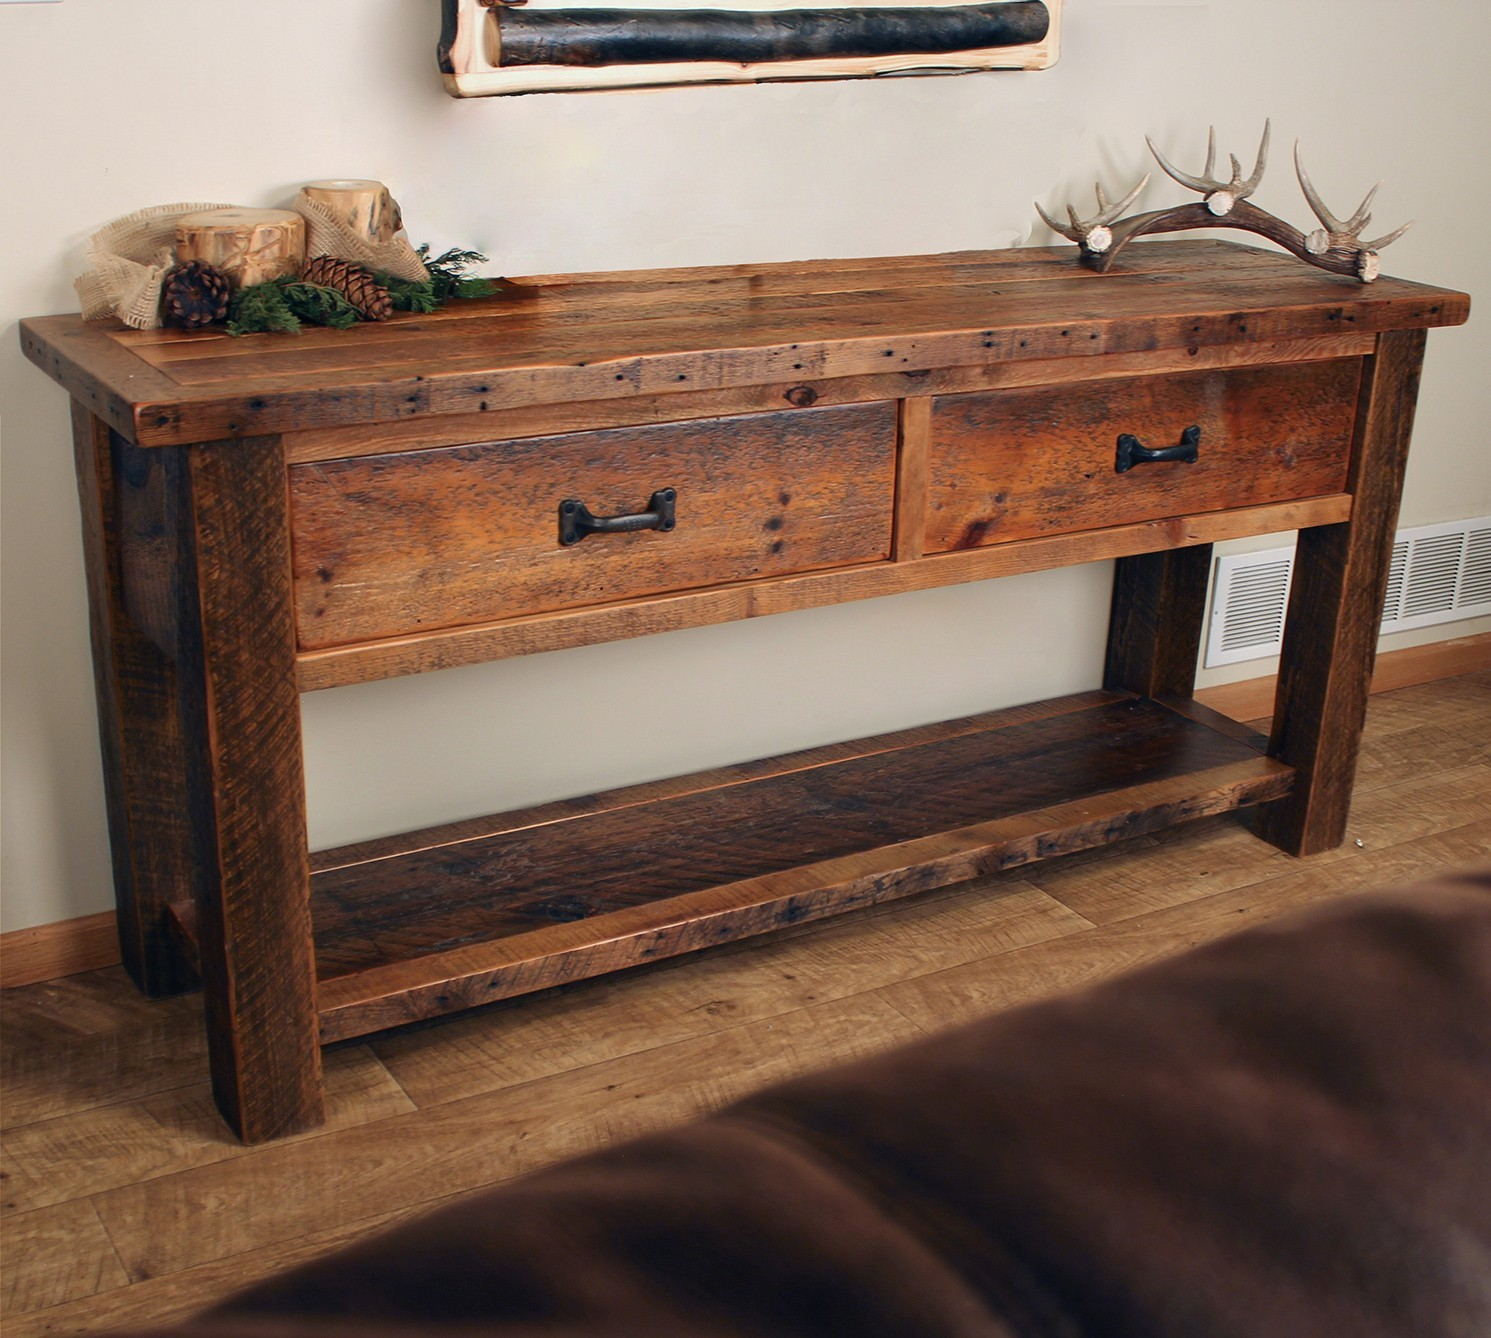 Rustic sofa Table Latest Old Sawmill Timber Frame sofa Table with Drawers Pattern